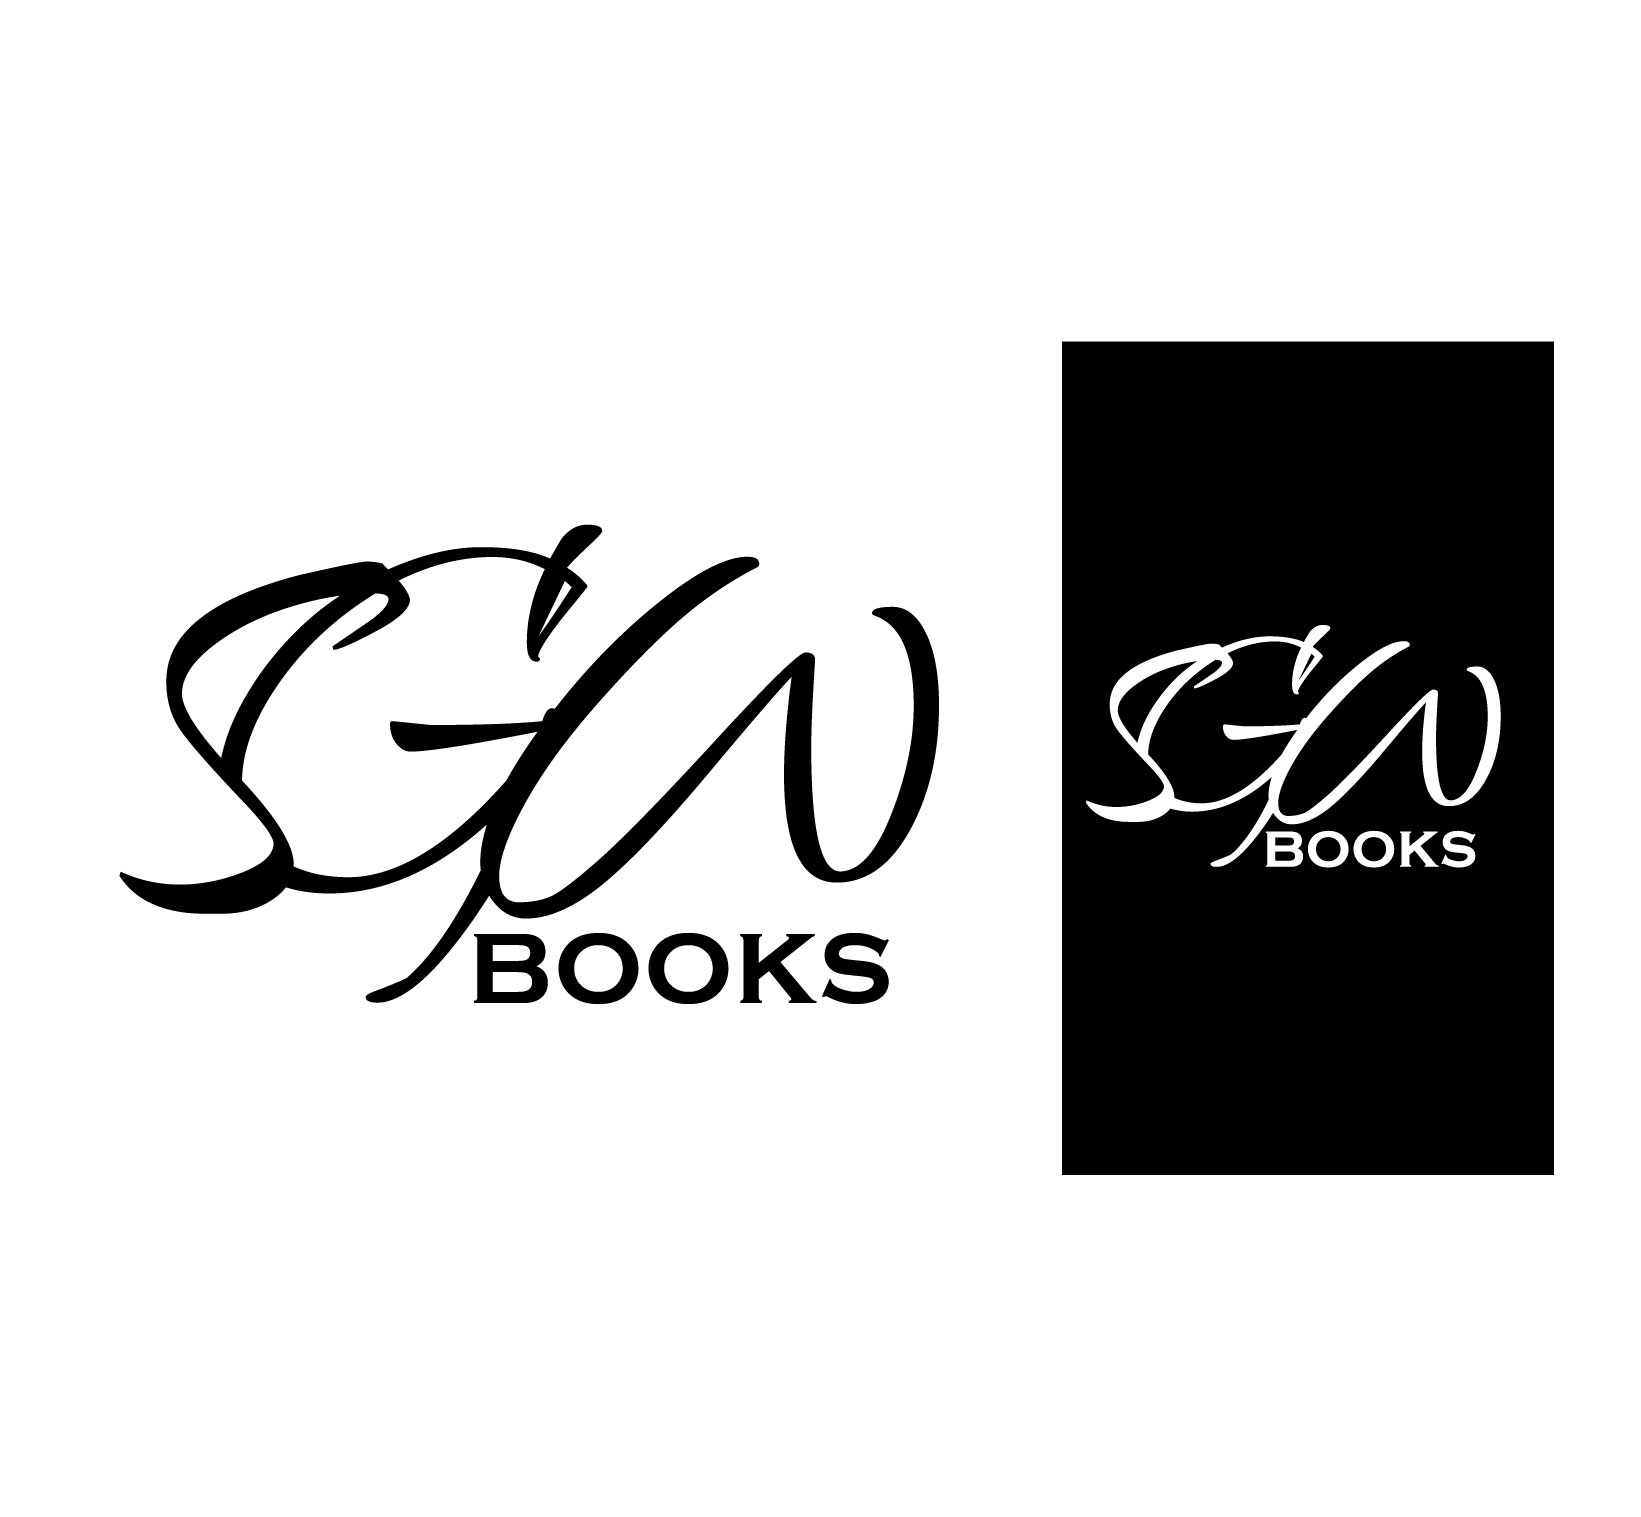 Logo Design by Darina Dimitrova - Entry No. 39 in the Logo Design Contest SGW Books Logo Design.